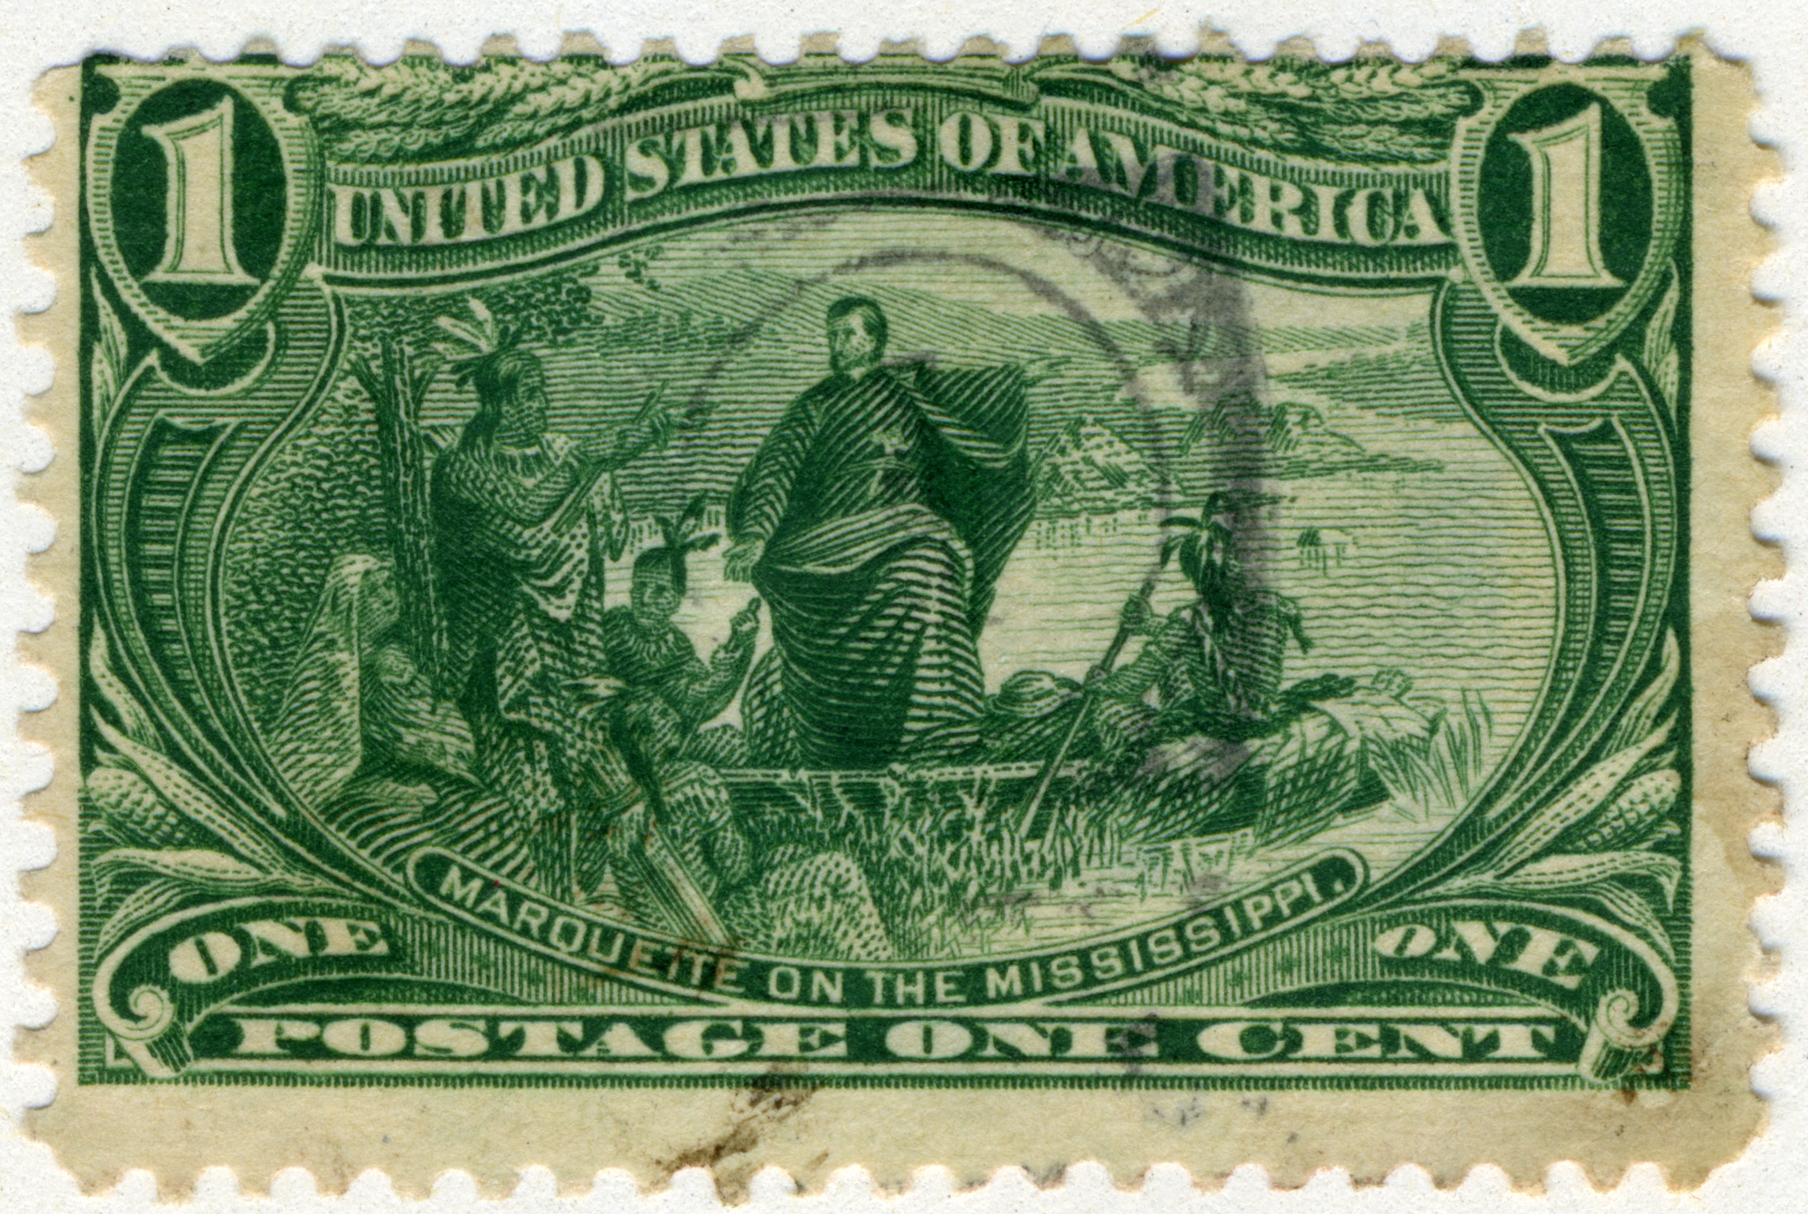 FileUS Stamp 1898 1c Marquette On The Mississippi